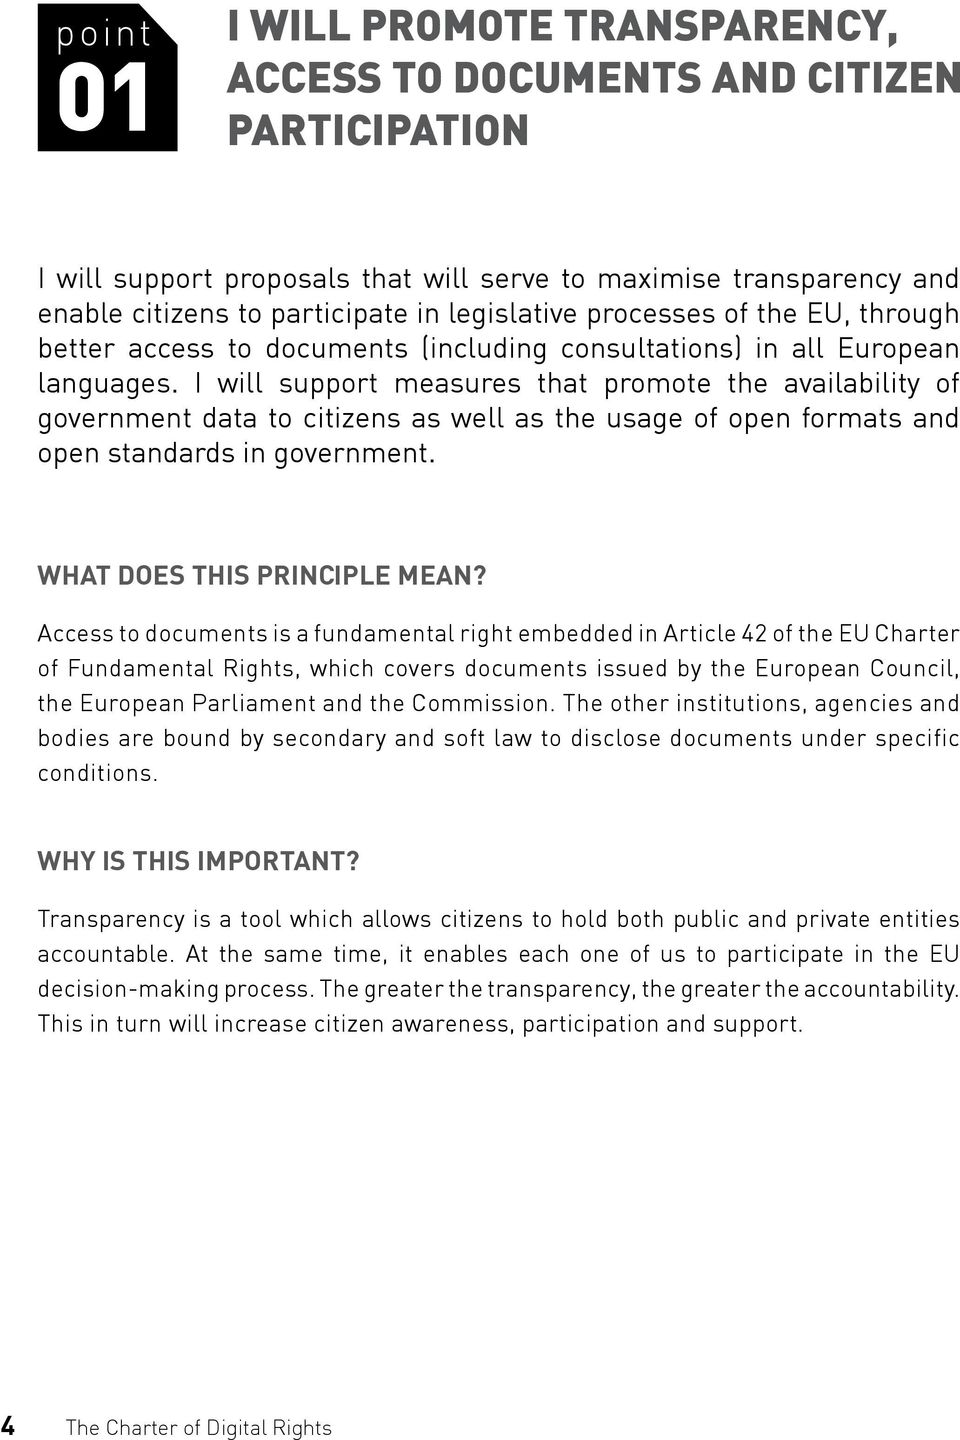 I will support measures that promote the availability of government data to citizens as well as the usage of open formats and open standards in government. WHAT DOES THIS PRINCIPLE MEAN?